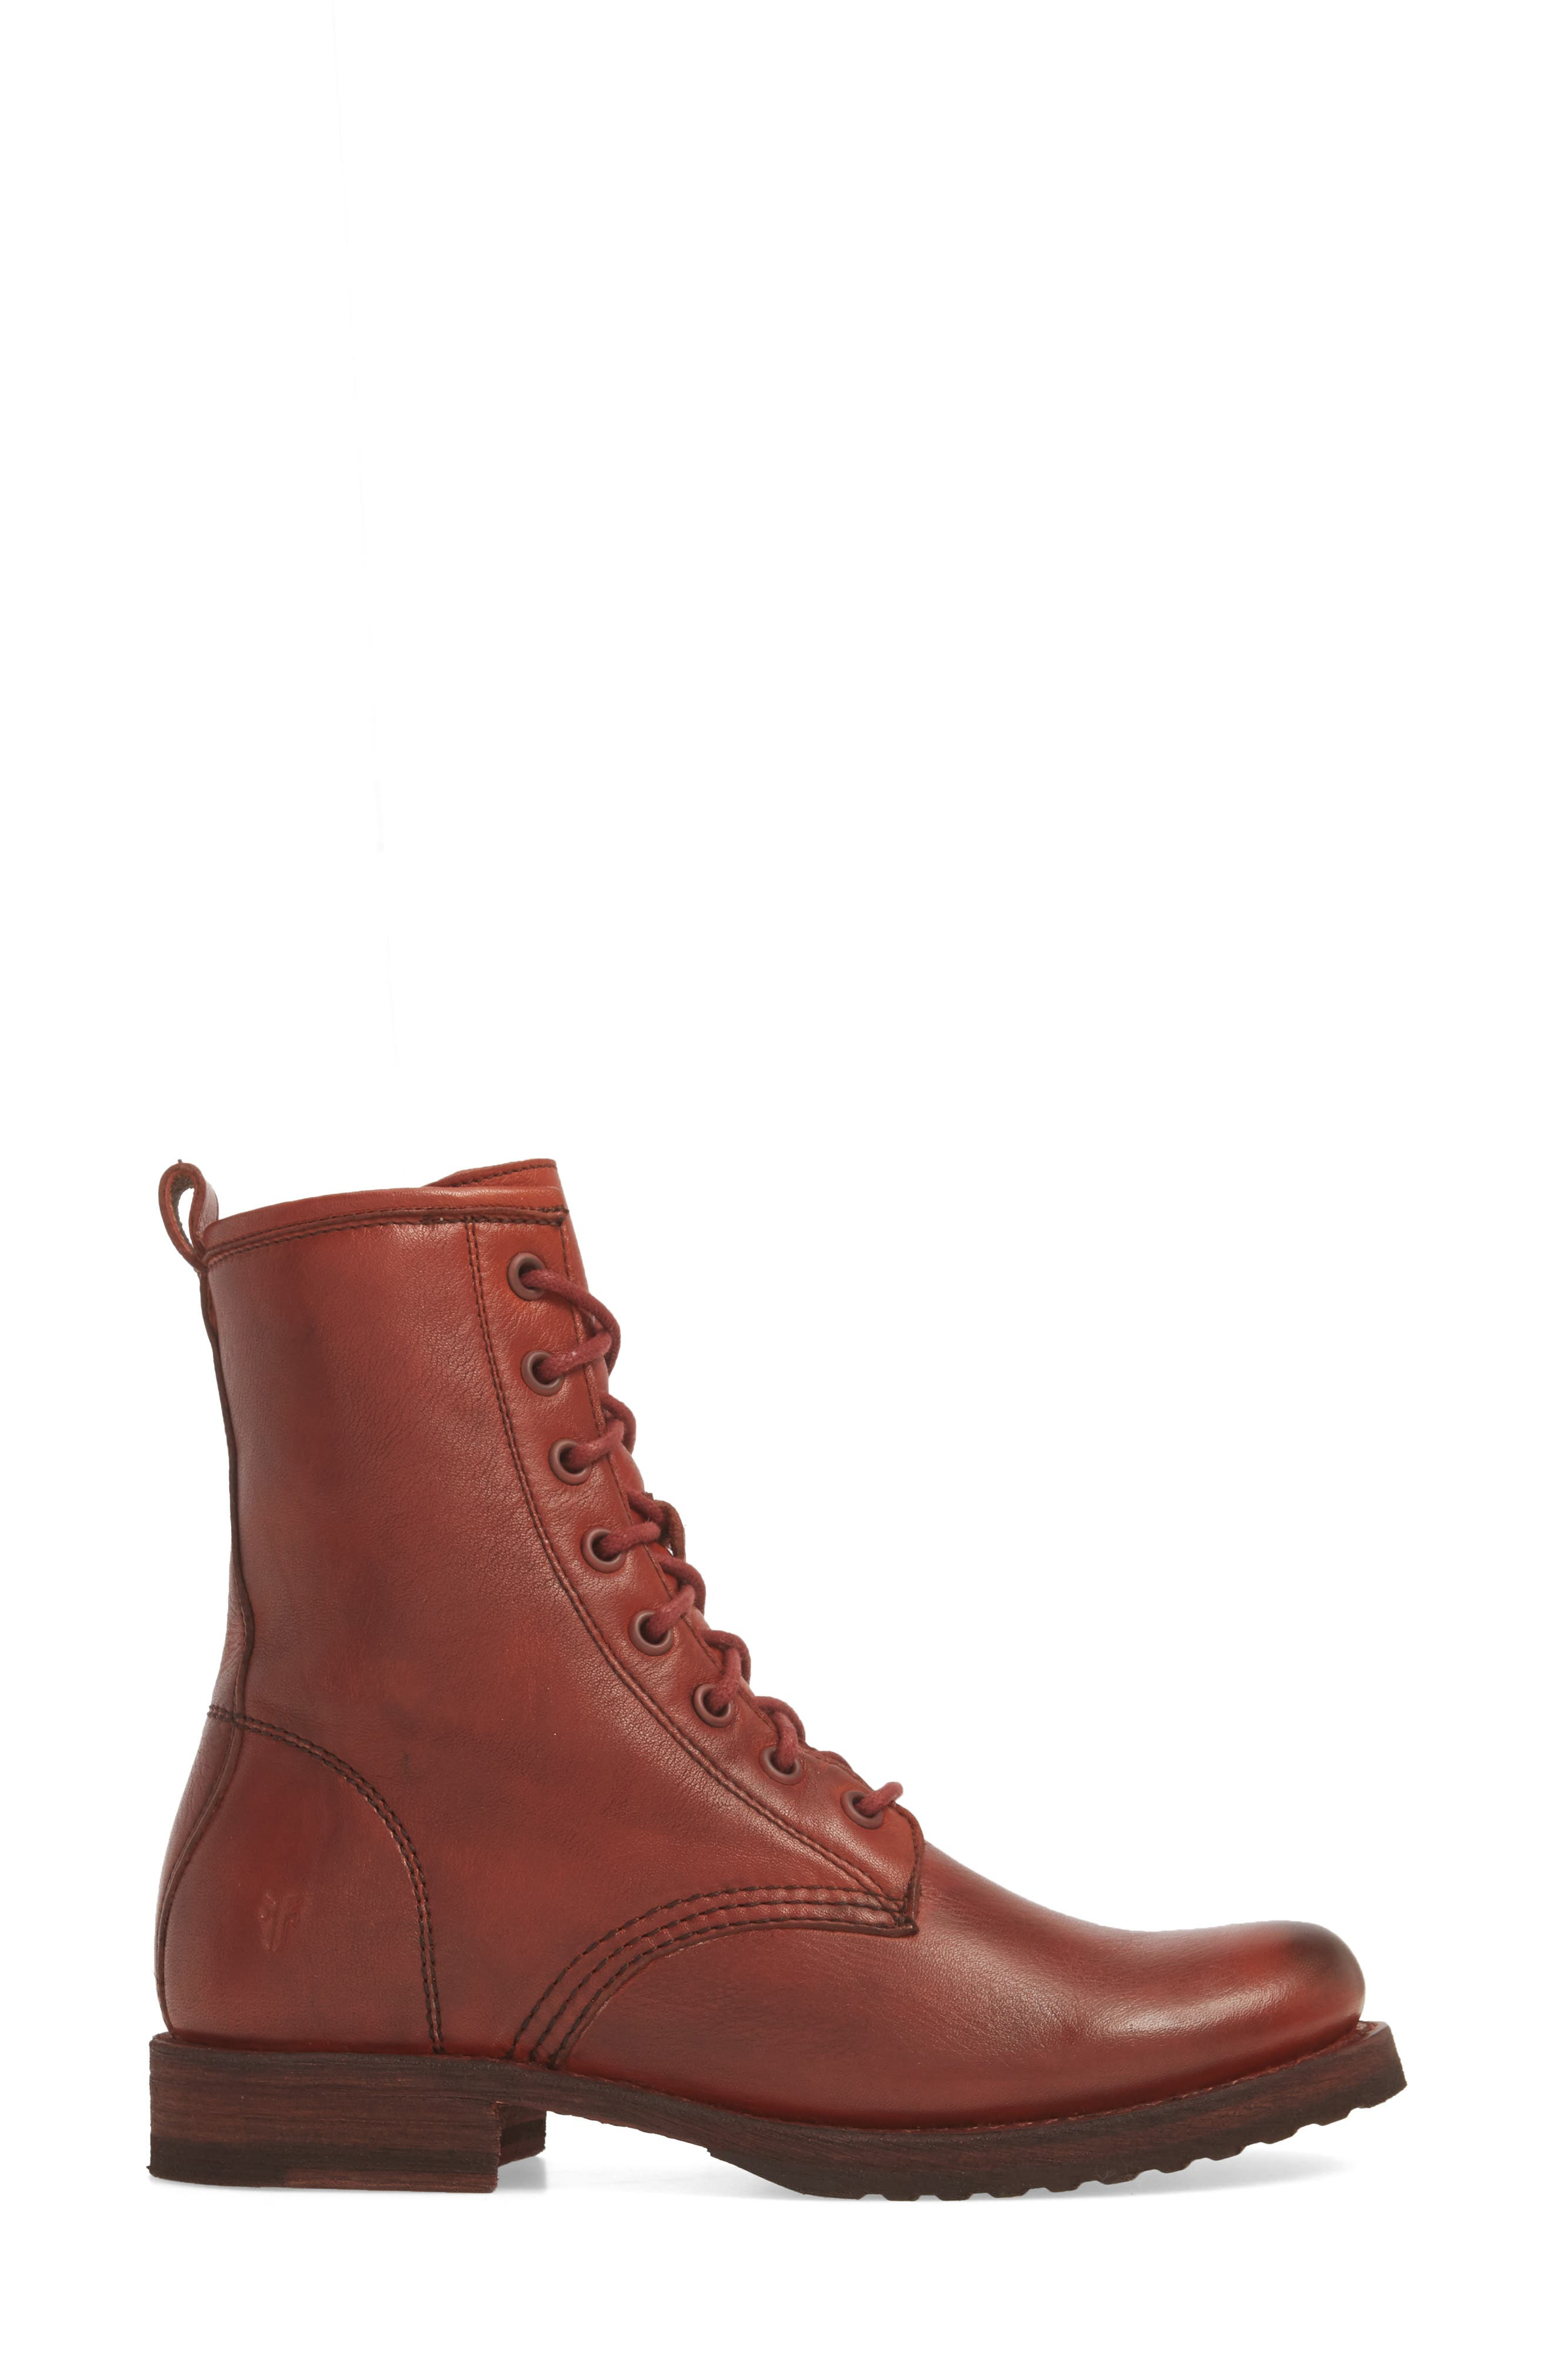 'Veronica Combat' Boot,                             Alternate thumbnail 4, color,                             Red Clay Leather